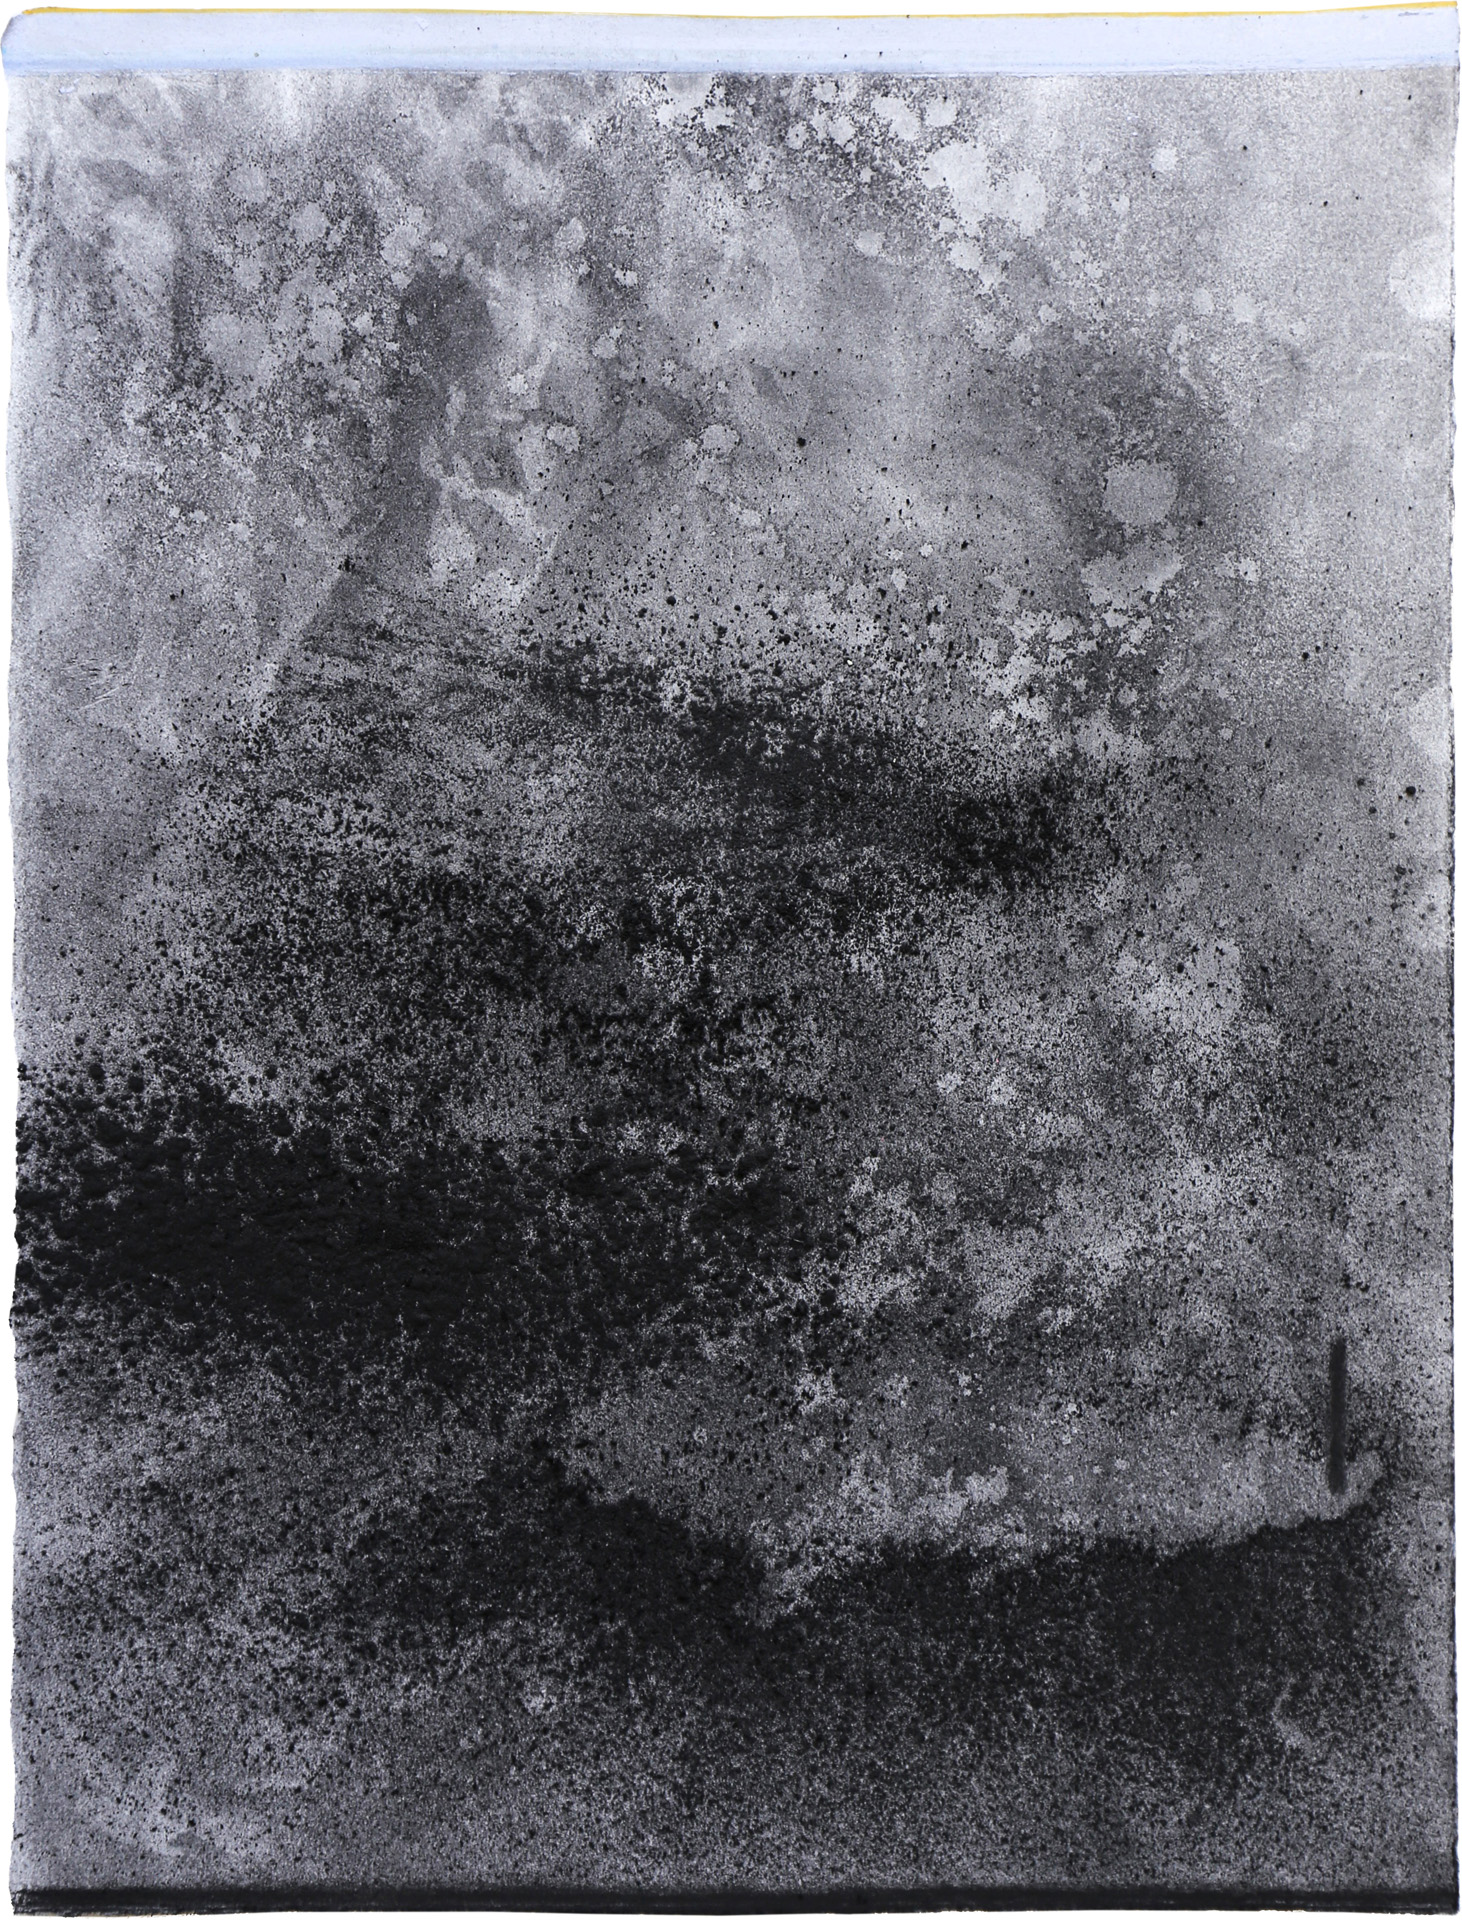 Nora Mona Bach – Tension III, 2020, pastel, charcoal on paper, 39 cm x 29 cm